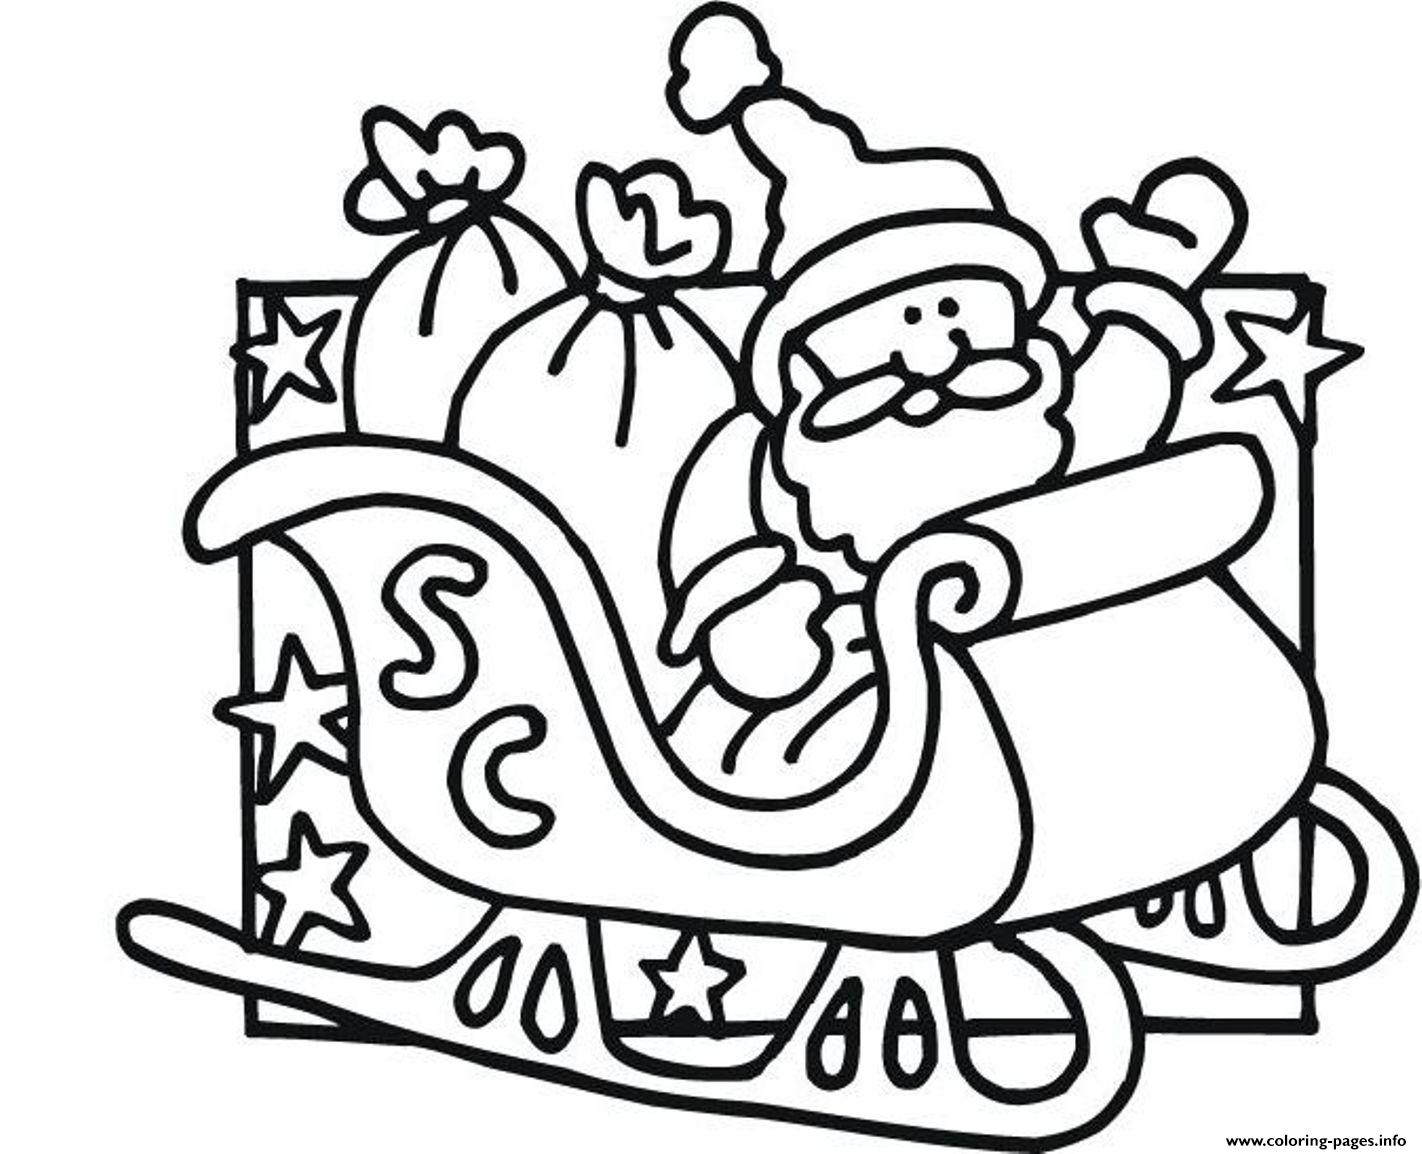 Coloring Pages Of Santa Claus2174 Coloring Pages Printable